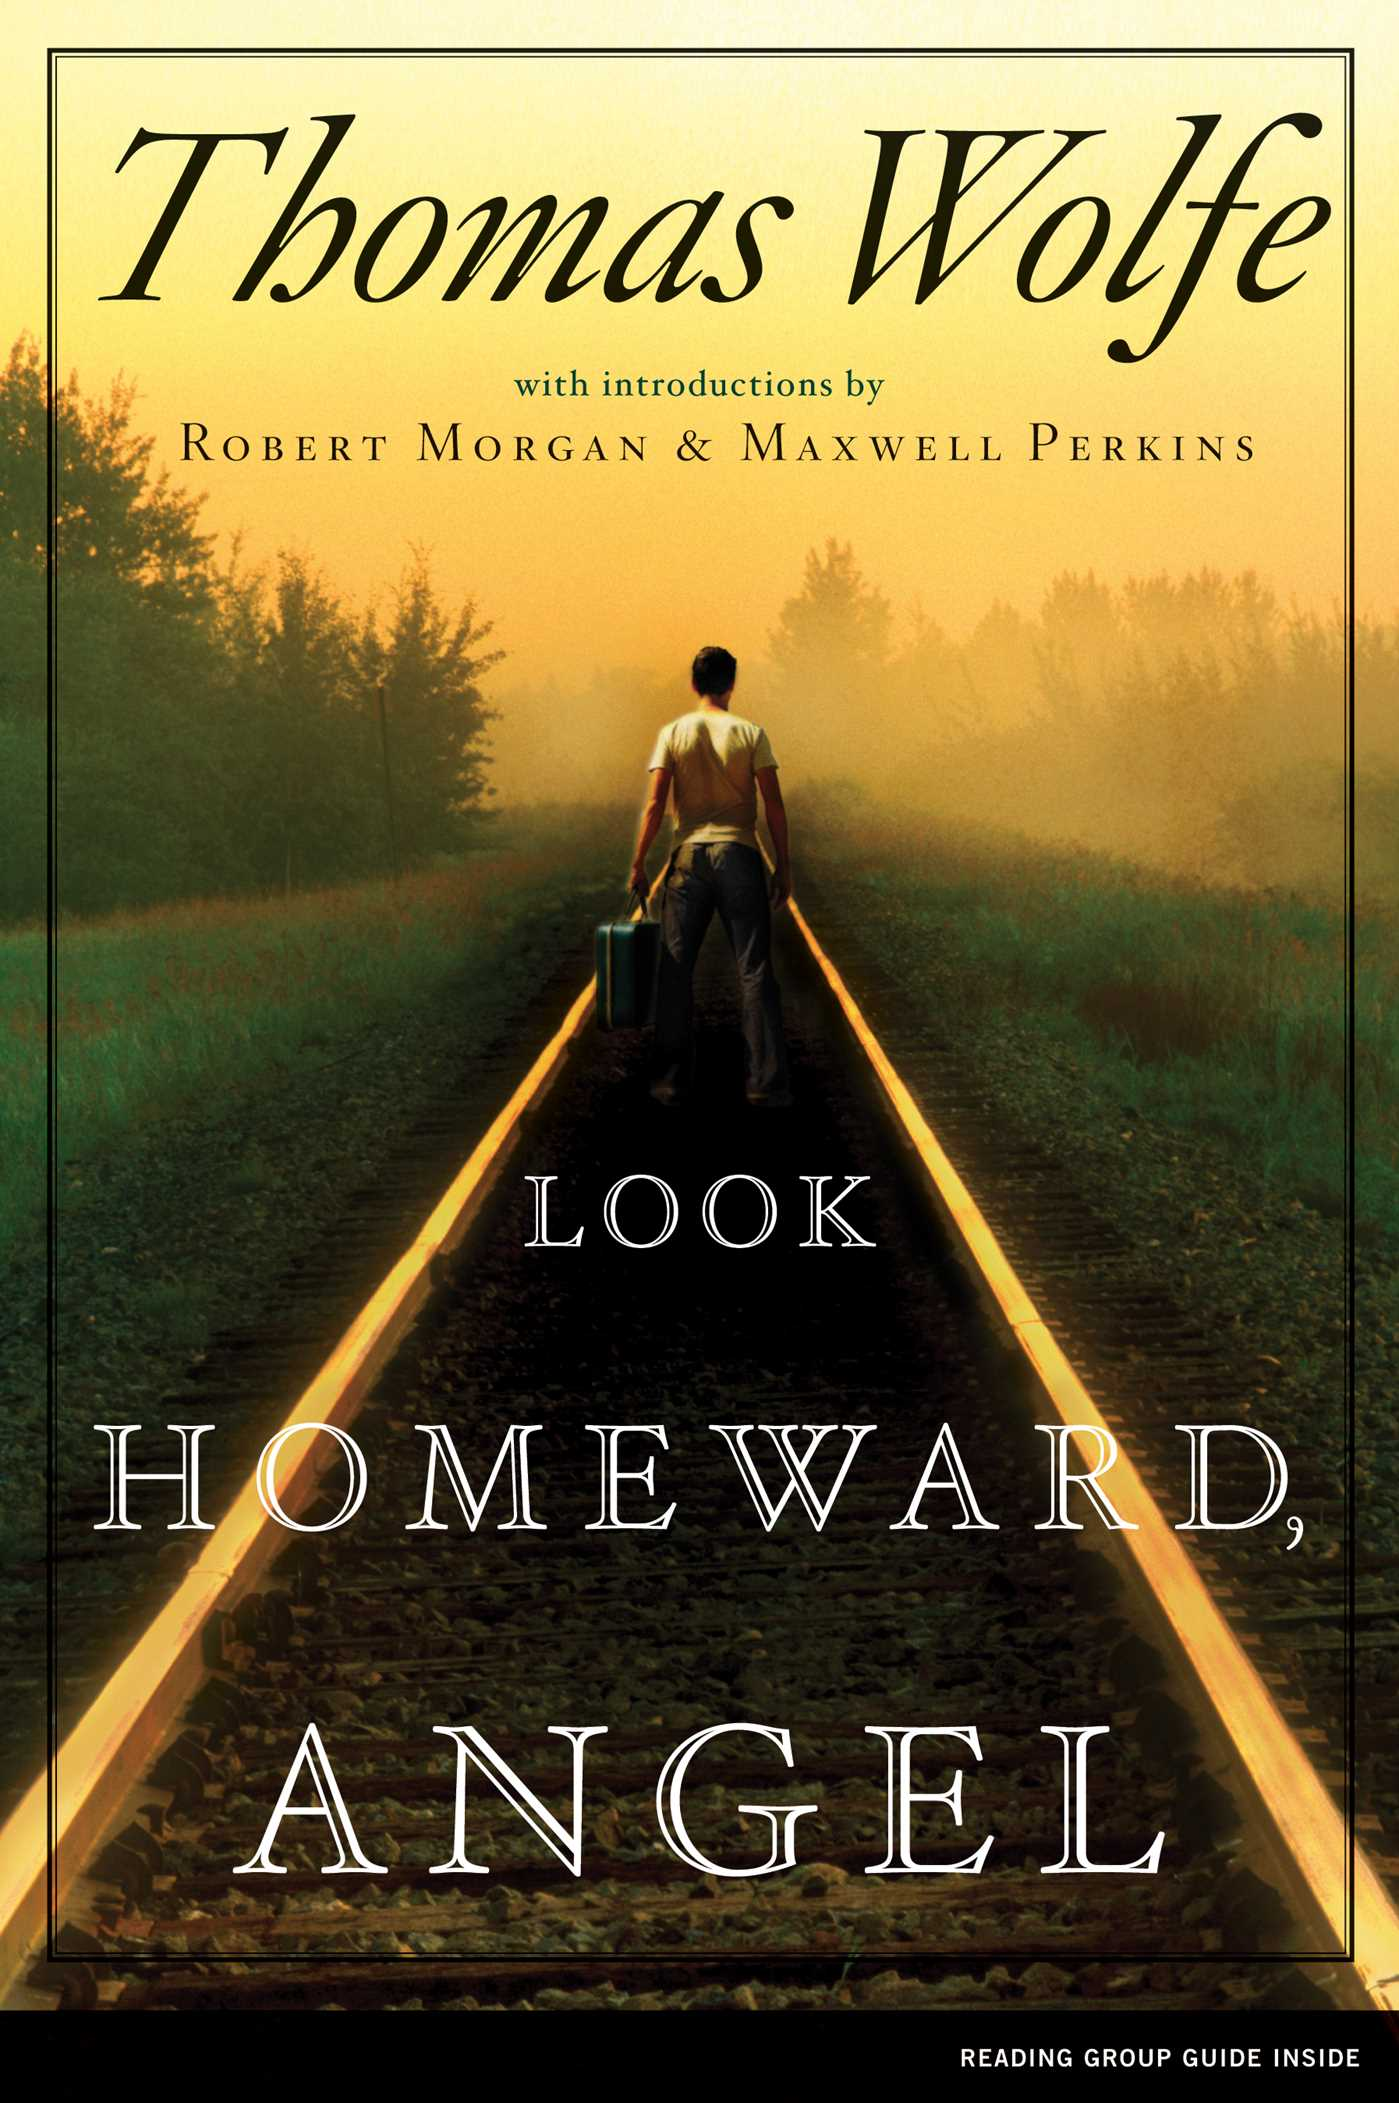 Look homeward angel ebook by thomas wolfe official publisher page look homeward angel ebook by thomas wolfe official publisher page simon schuster fandeluxe